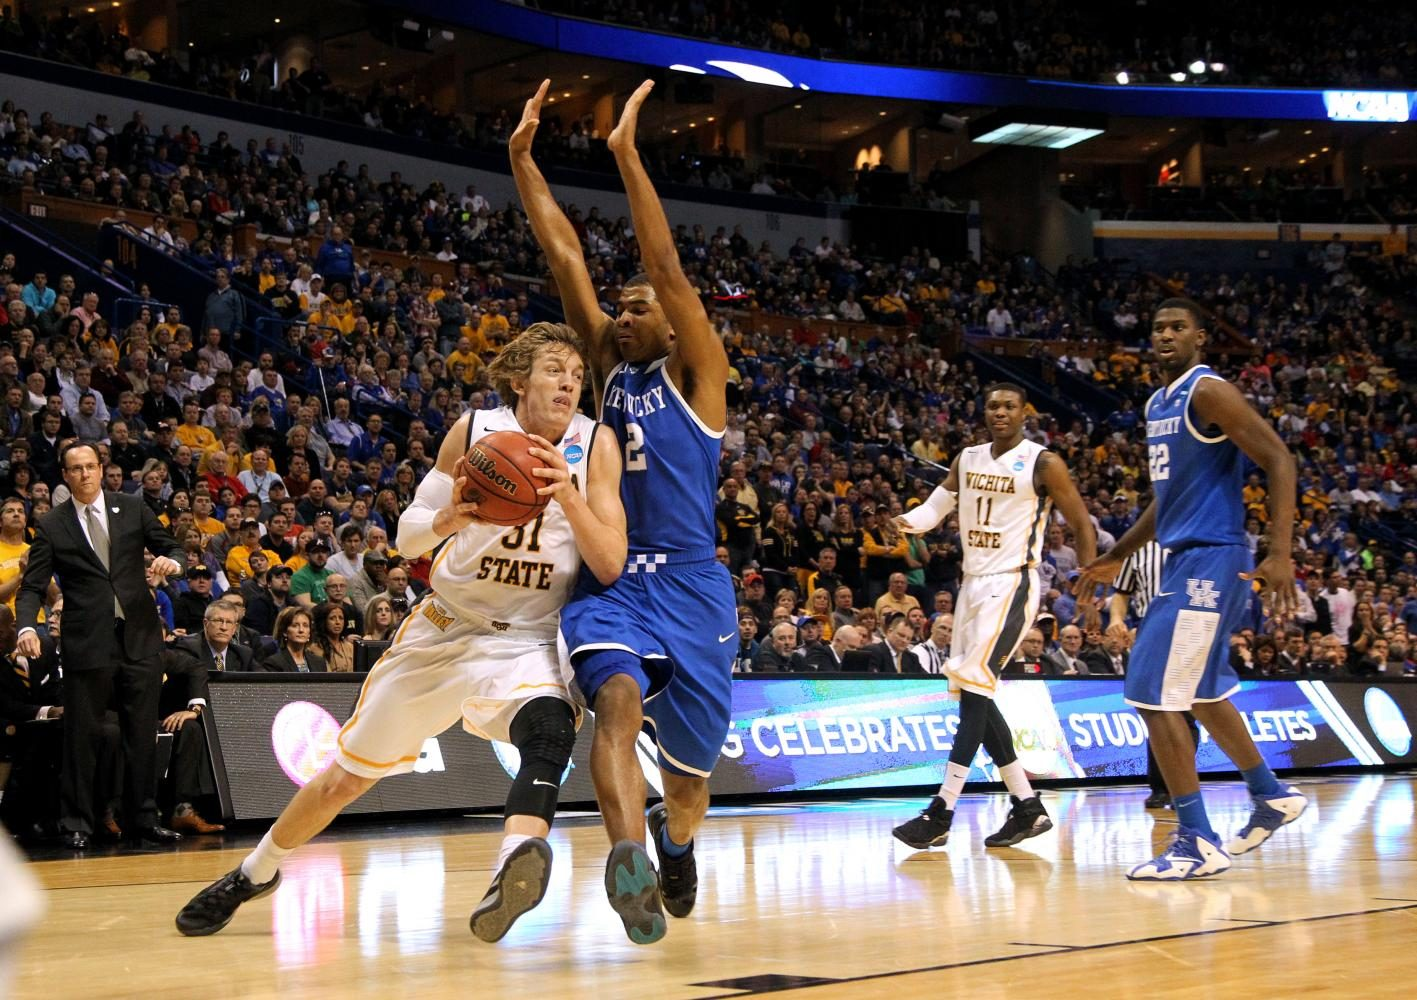 Wichita State University sophomore guard Ron Baker drives to the basket against University of Kentucky freshman guard Andrew Harrison on March 23, 2014, at the Scottrade Center in St. Louis, Missouri. The Shockers lost the game by two points, as sophomore guard Fred Van Vleet missed the potential game-winning 3-pointer at the buzzer, and the Wildcats would go on to make it to the national championship game. This game was often regarded as the best, most thrilling game of the entire tournament. The local Wichita magazine, Splurge! Magazine, gave me the opportunity to photograph the first and second round games of the 2014 March Madness tournament because all three Division 1 Kansas schools competed in St. Louis that weekend. I will never forget being on the sidelines alongside ESPN and Sports Illustrated photographers. I was able to photograph so many great college players like Andrew Wiggins, Perry Ellis, Wayne Selden, and Joel Embiid (although he was injured) from Kansas, and Willie Cauley-Stein, Julius Randle, and the Harrison twins from Kentucky. While I didn't cover this for The Baker Orange, I did publish a gallery and article about my unbelievable experience.